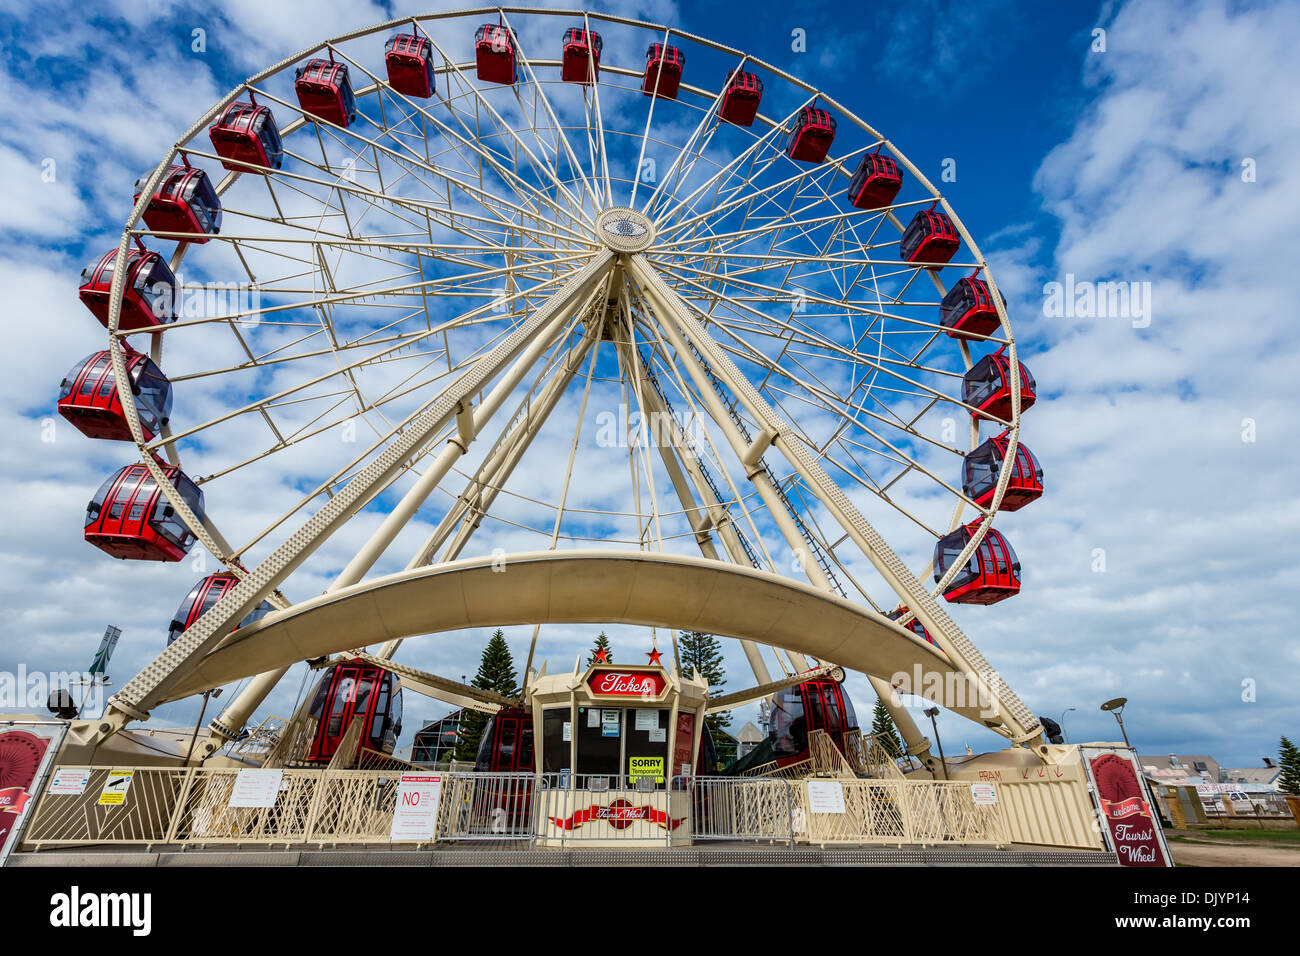 The Skyview Observation Wheel, Fremantle, Western Australia, Australia - Stock Image